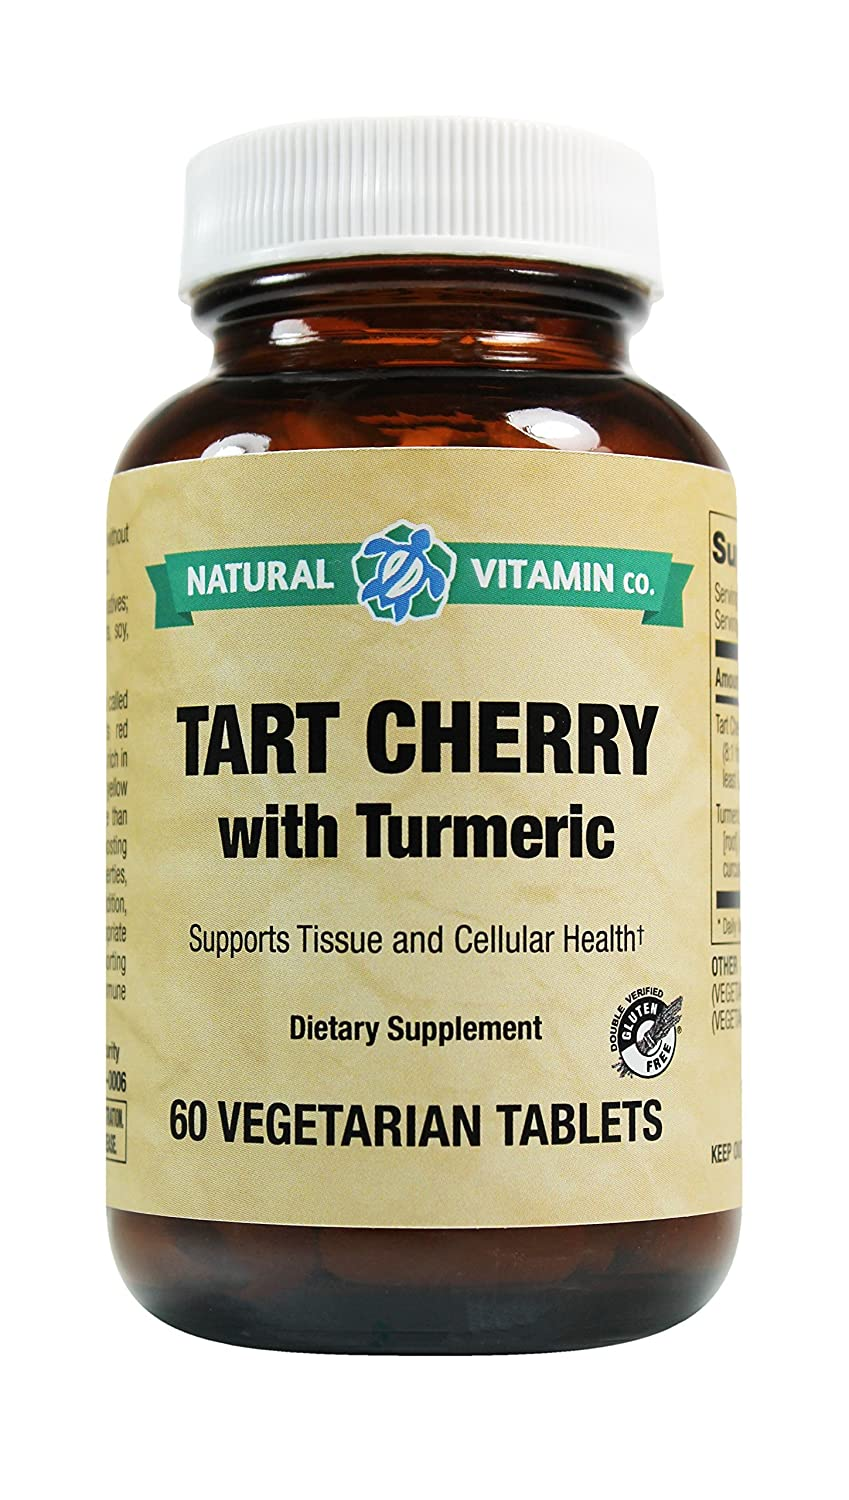 Natural Vitamin Co. – Tart Cherry with Turmeric, Tart Cherry 825mg, Turmeric 50mg, 60 Tablets, 2 Month Supply, Gluten Free, Vegetarian, Vegan